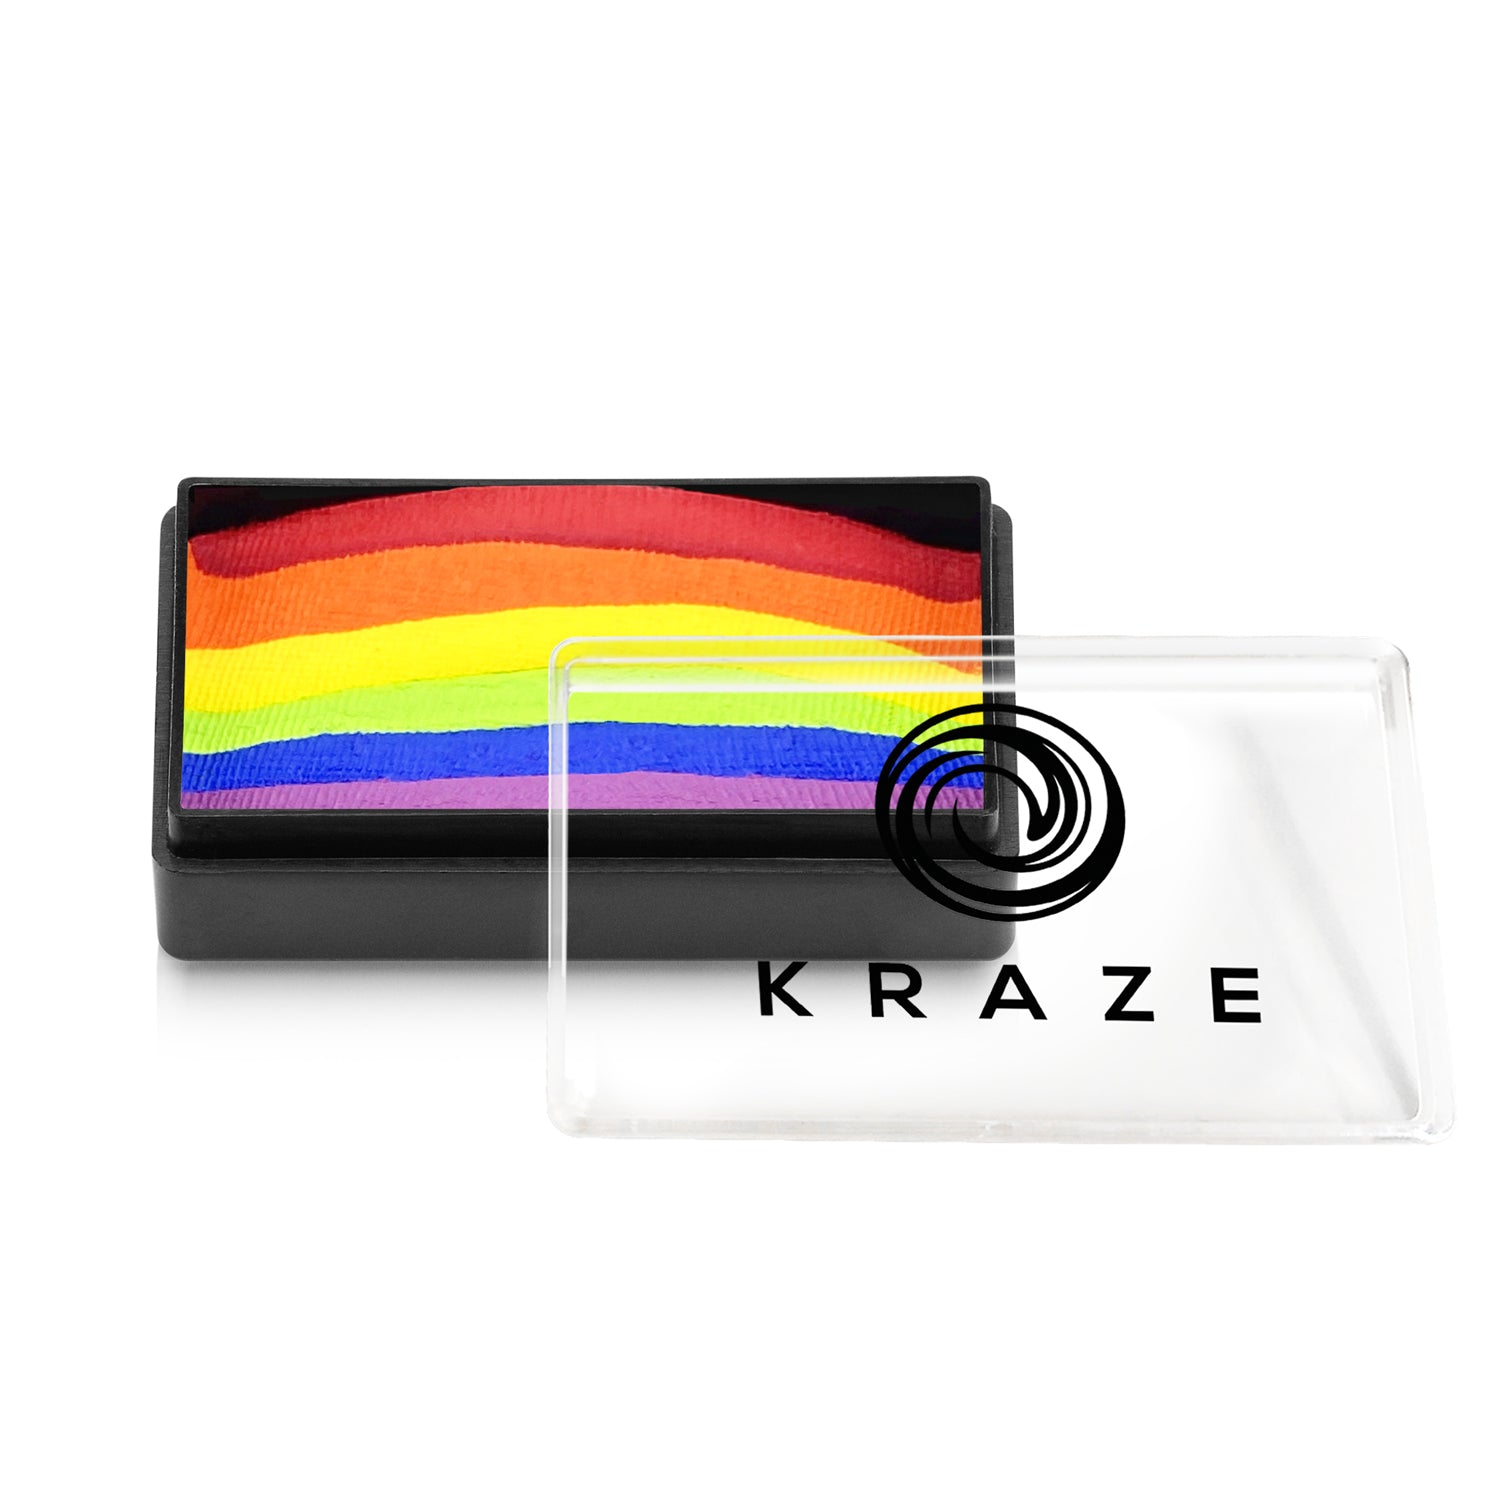 Kraze FX Dome Stroke - 25 gm - Deep Rainbow